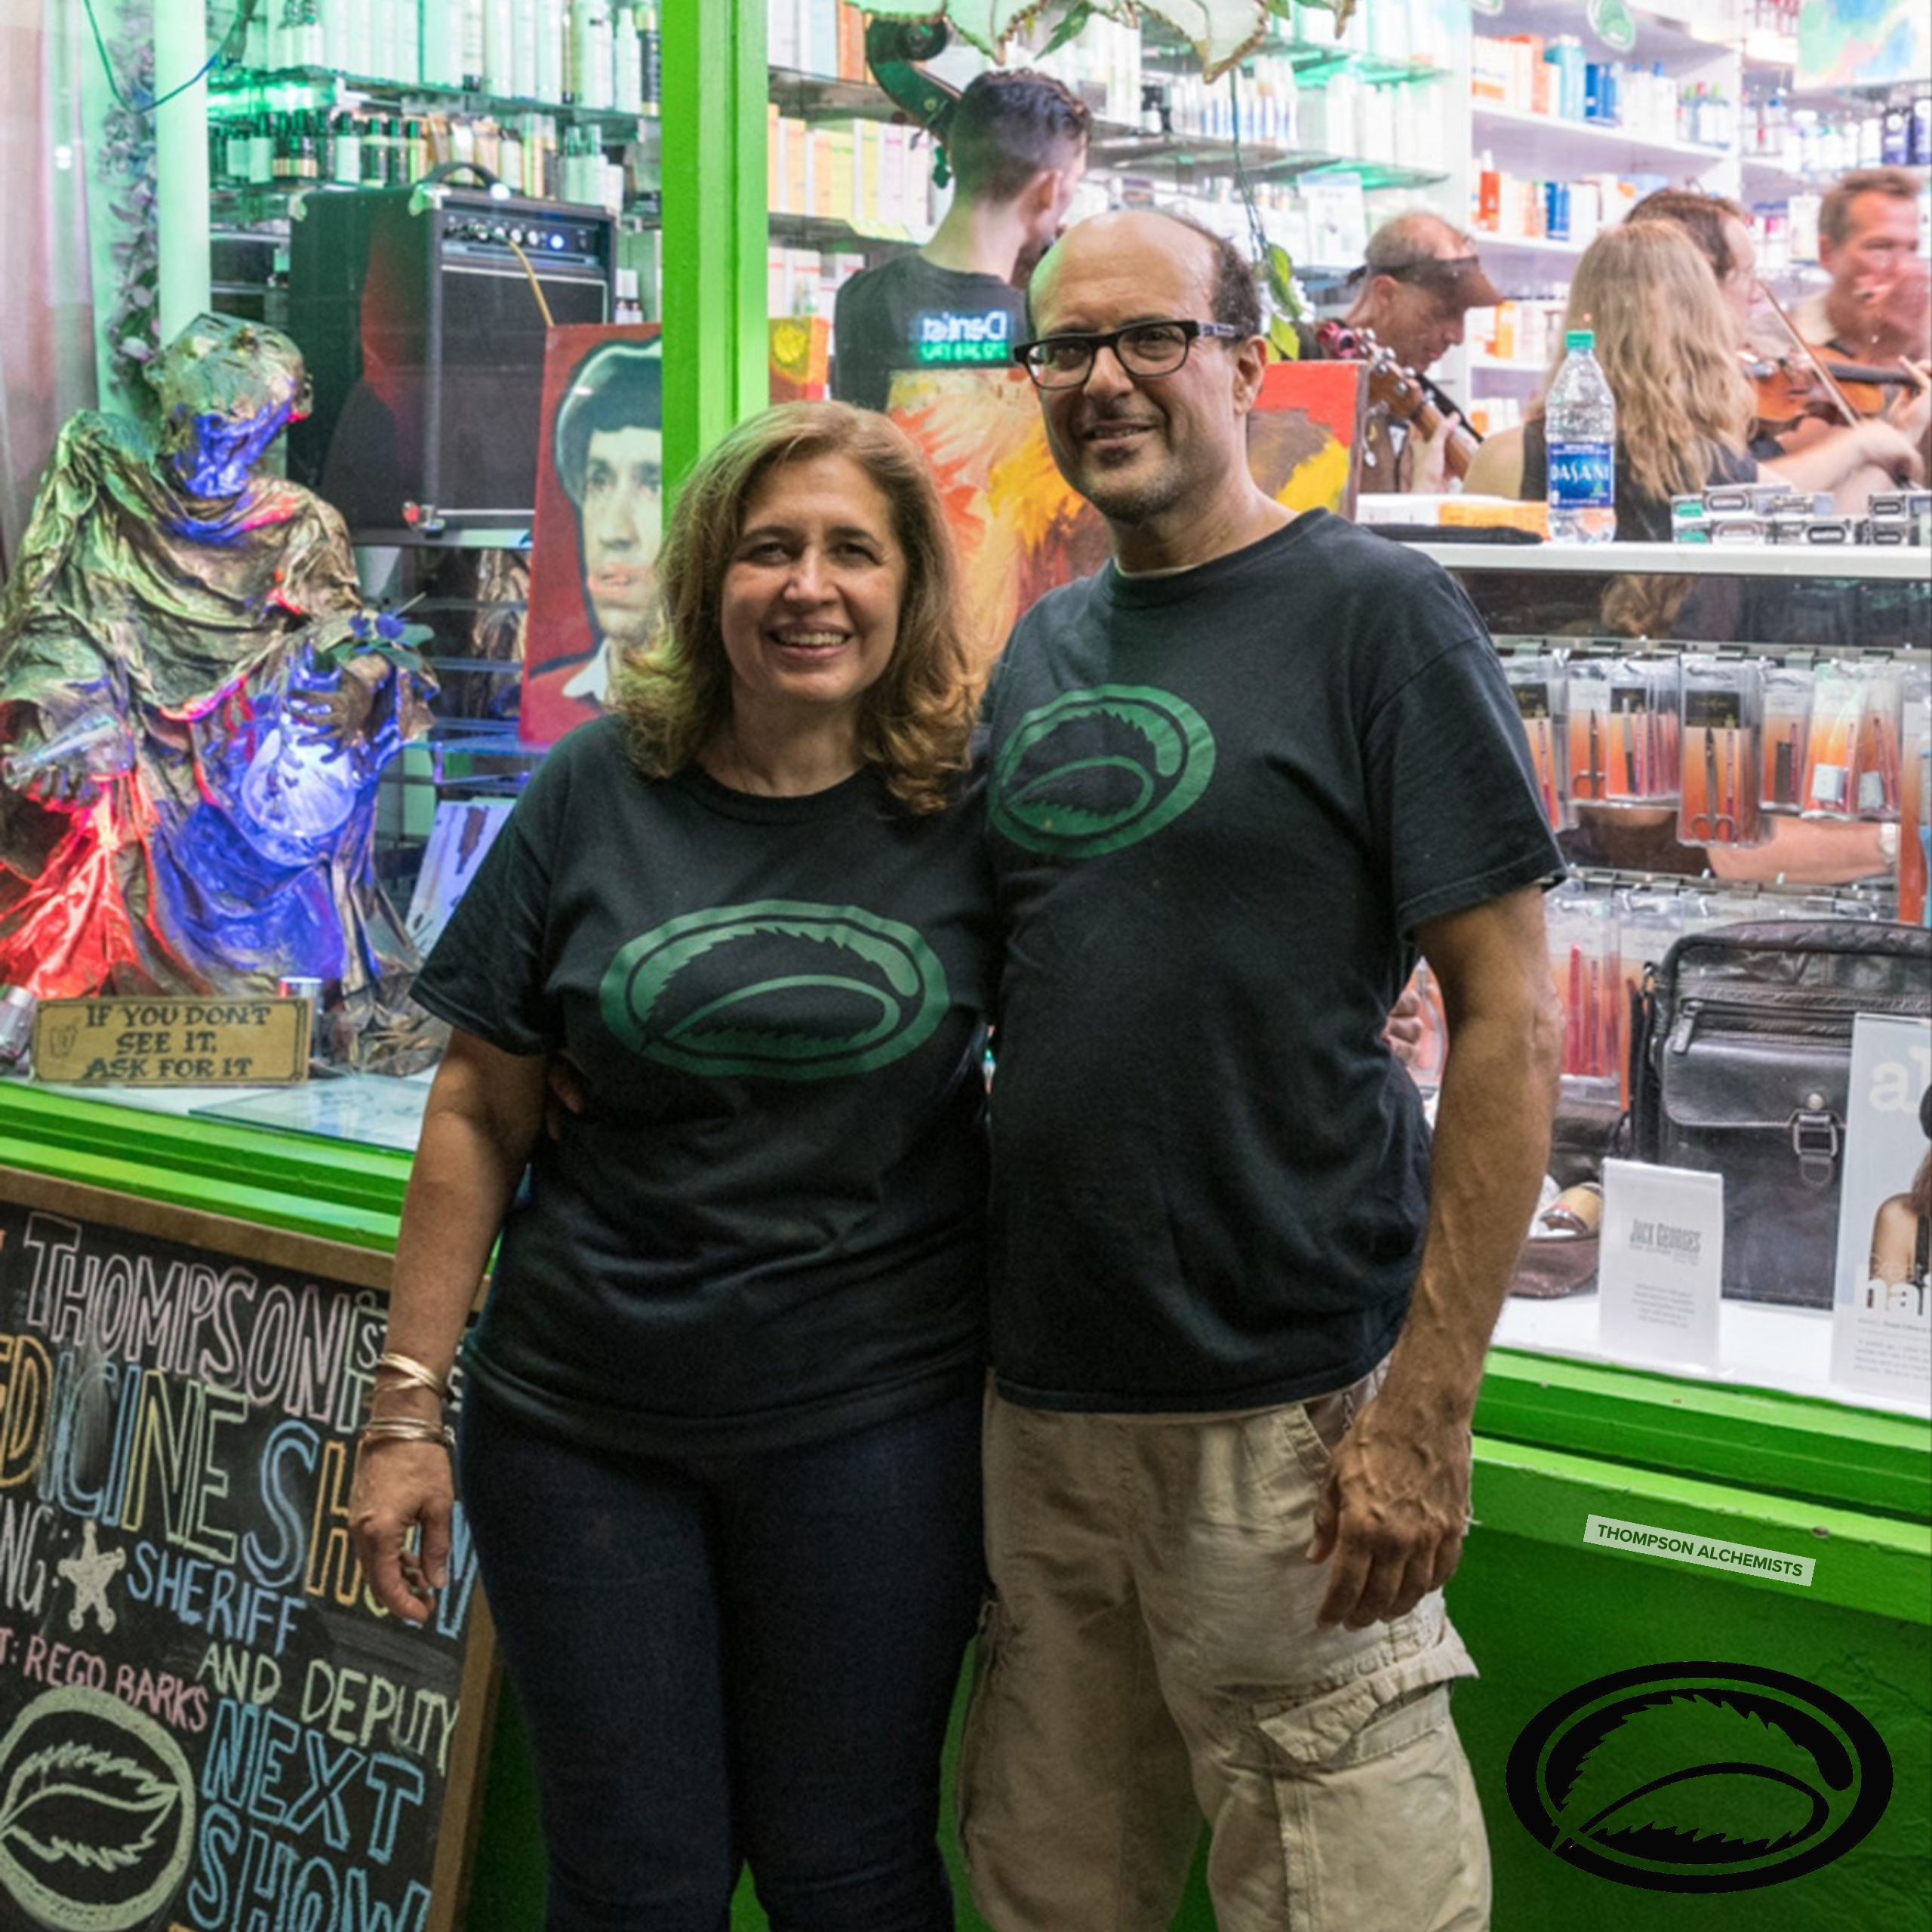 Jolie and Gary Alony, aka, Mama J and the medicine man, standing in front of Thompson Alchemists, Soho, NYC, Thompson Street Medicine Show in the background